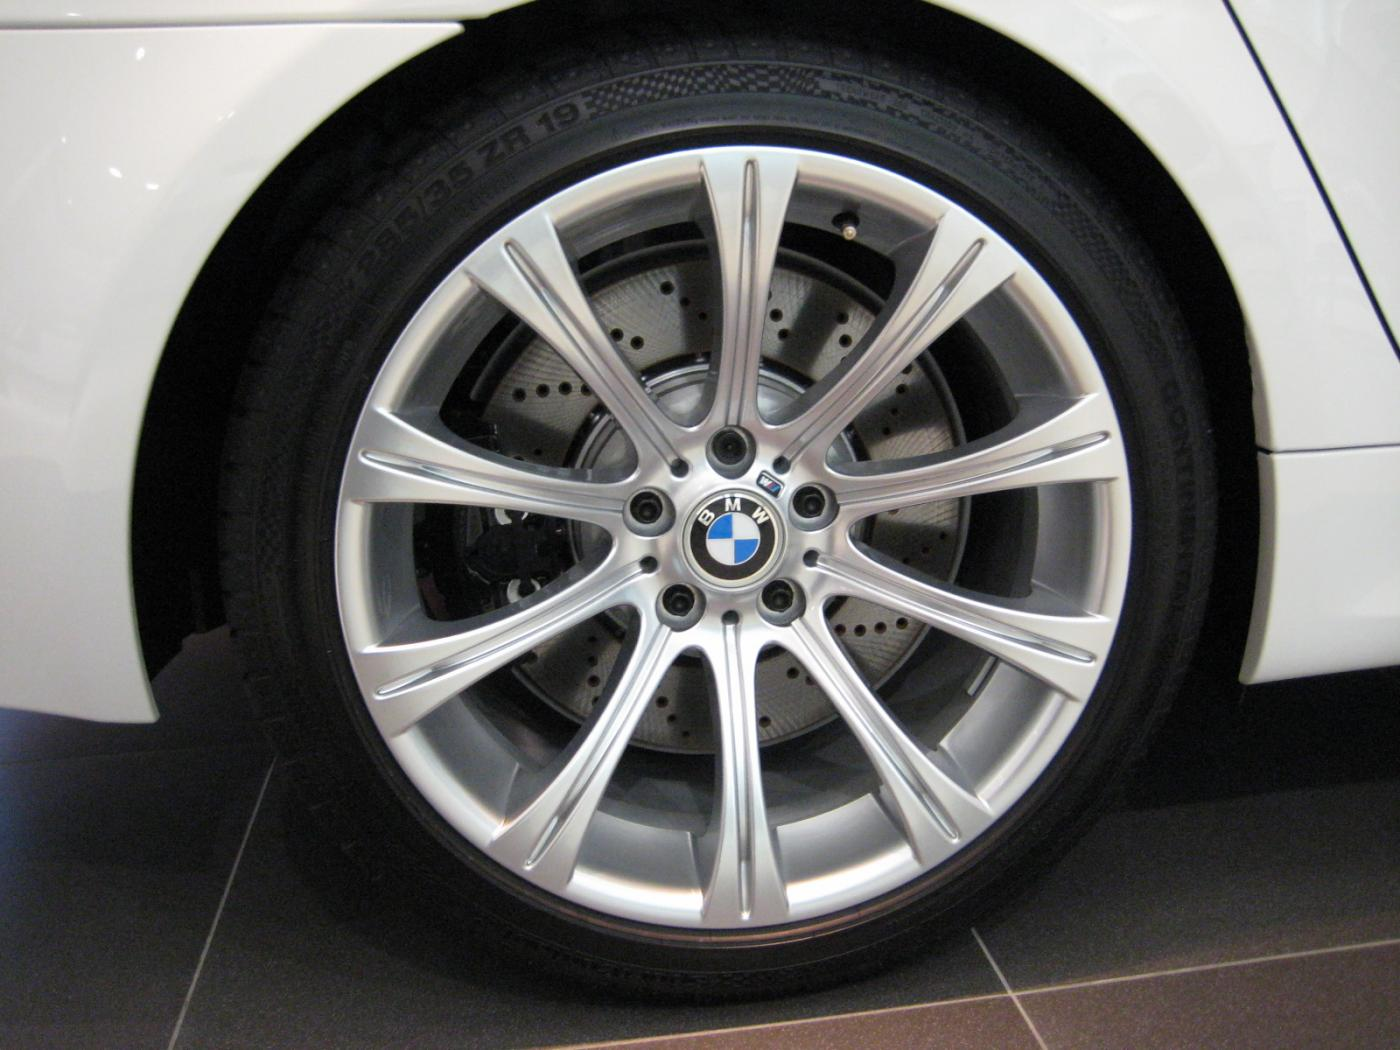 Bmw Bolt Pattern >> E60 M5 wheels on E53 X5? - Xoutpost.com